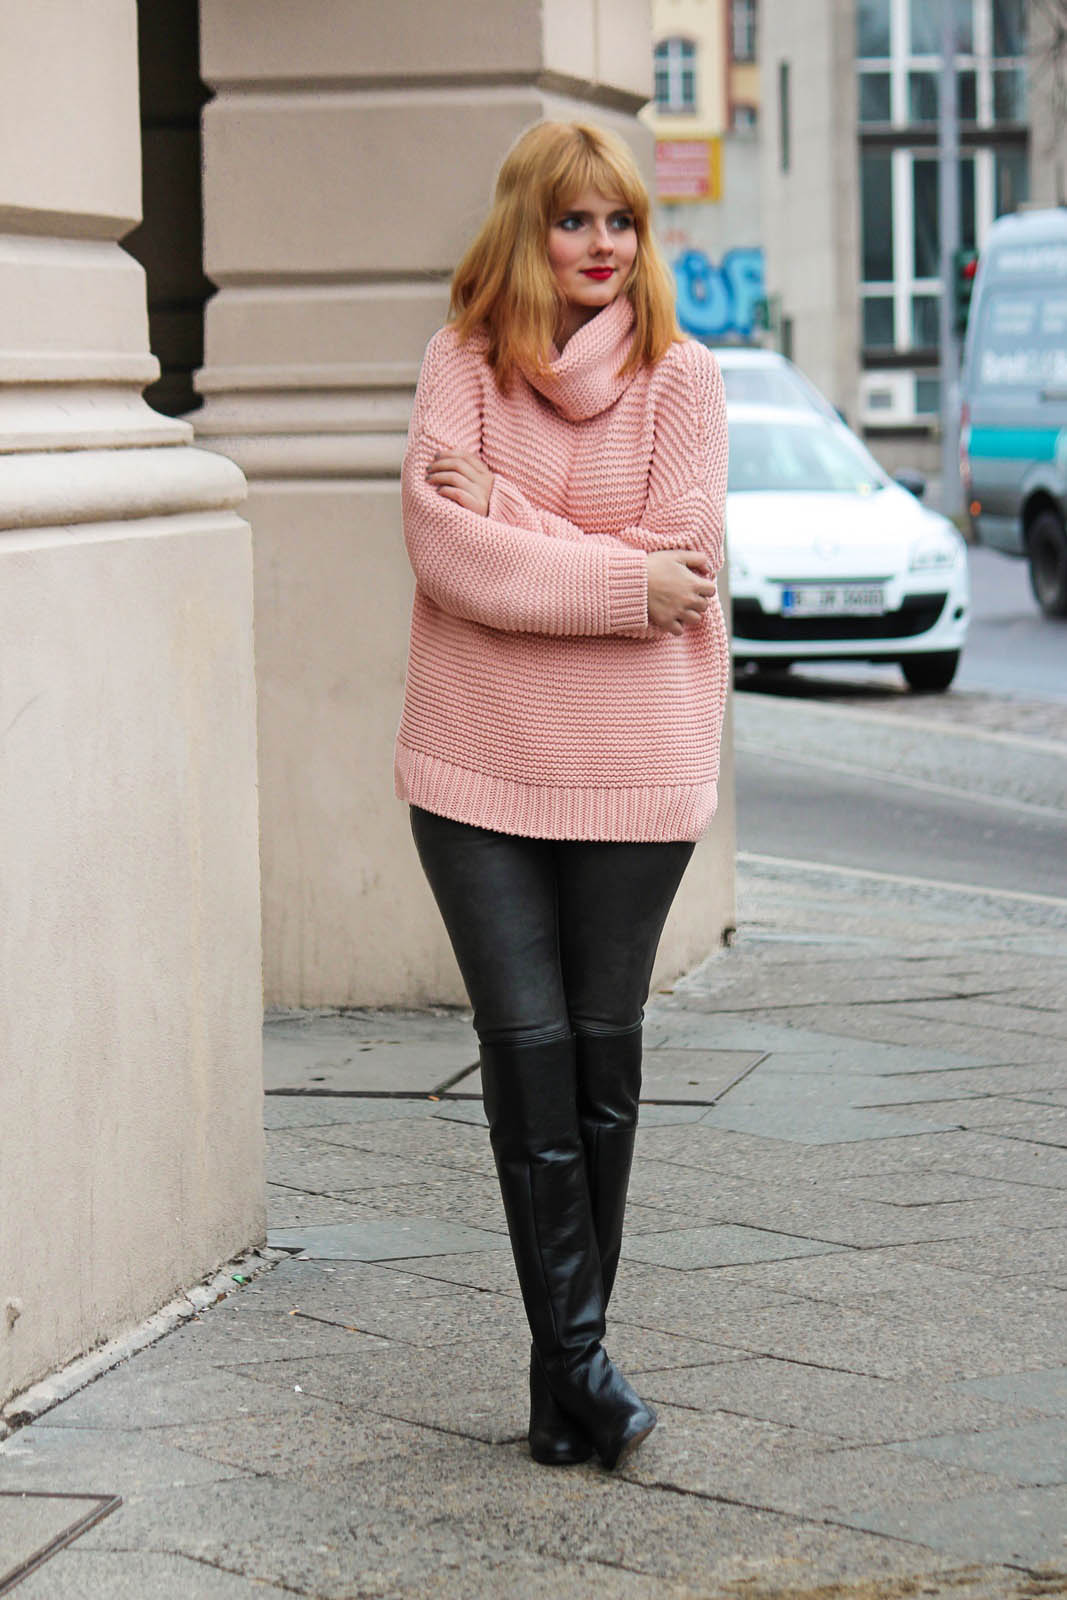 Berlin City Style - Turtleneck Sweater, Overknee Boots 3